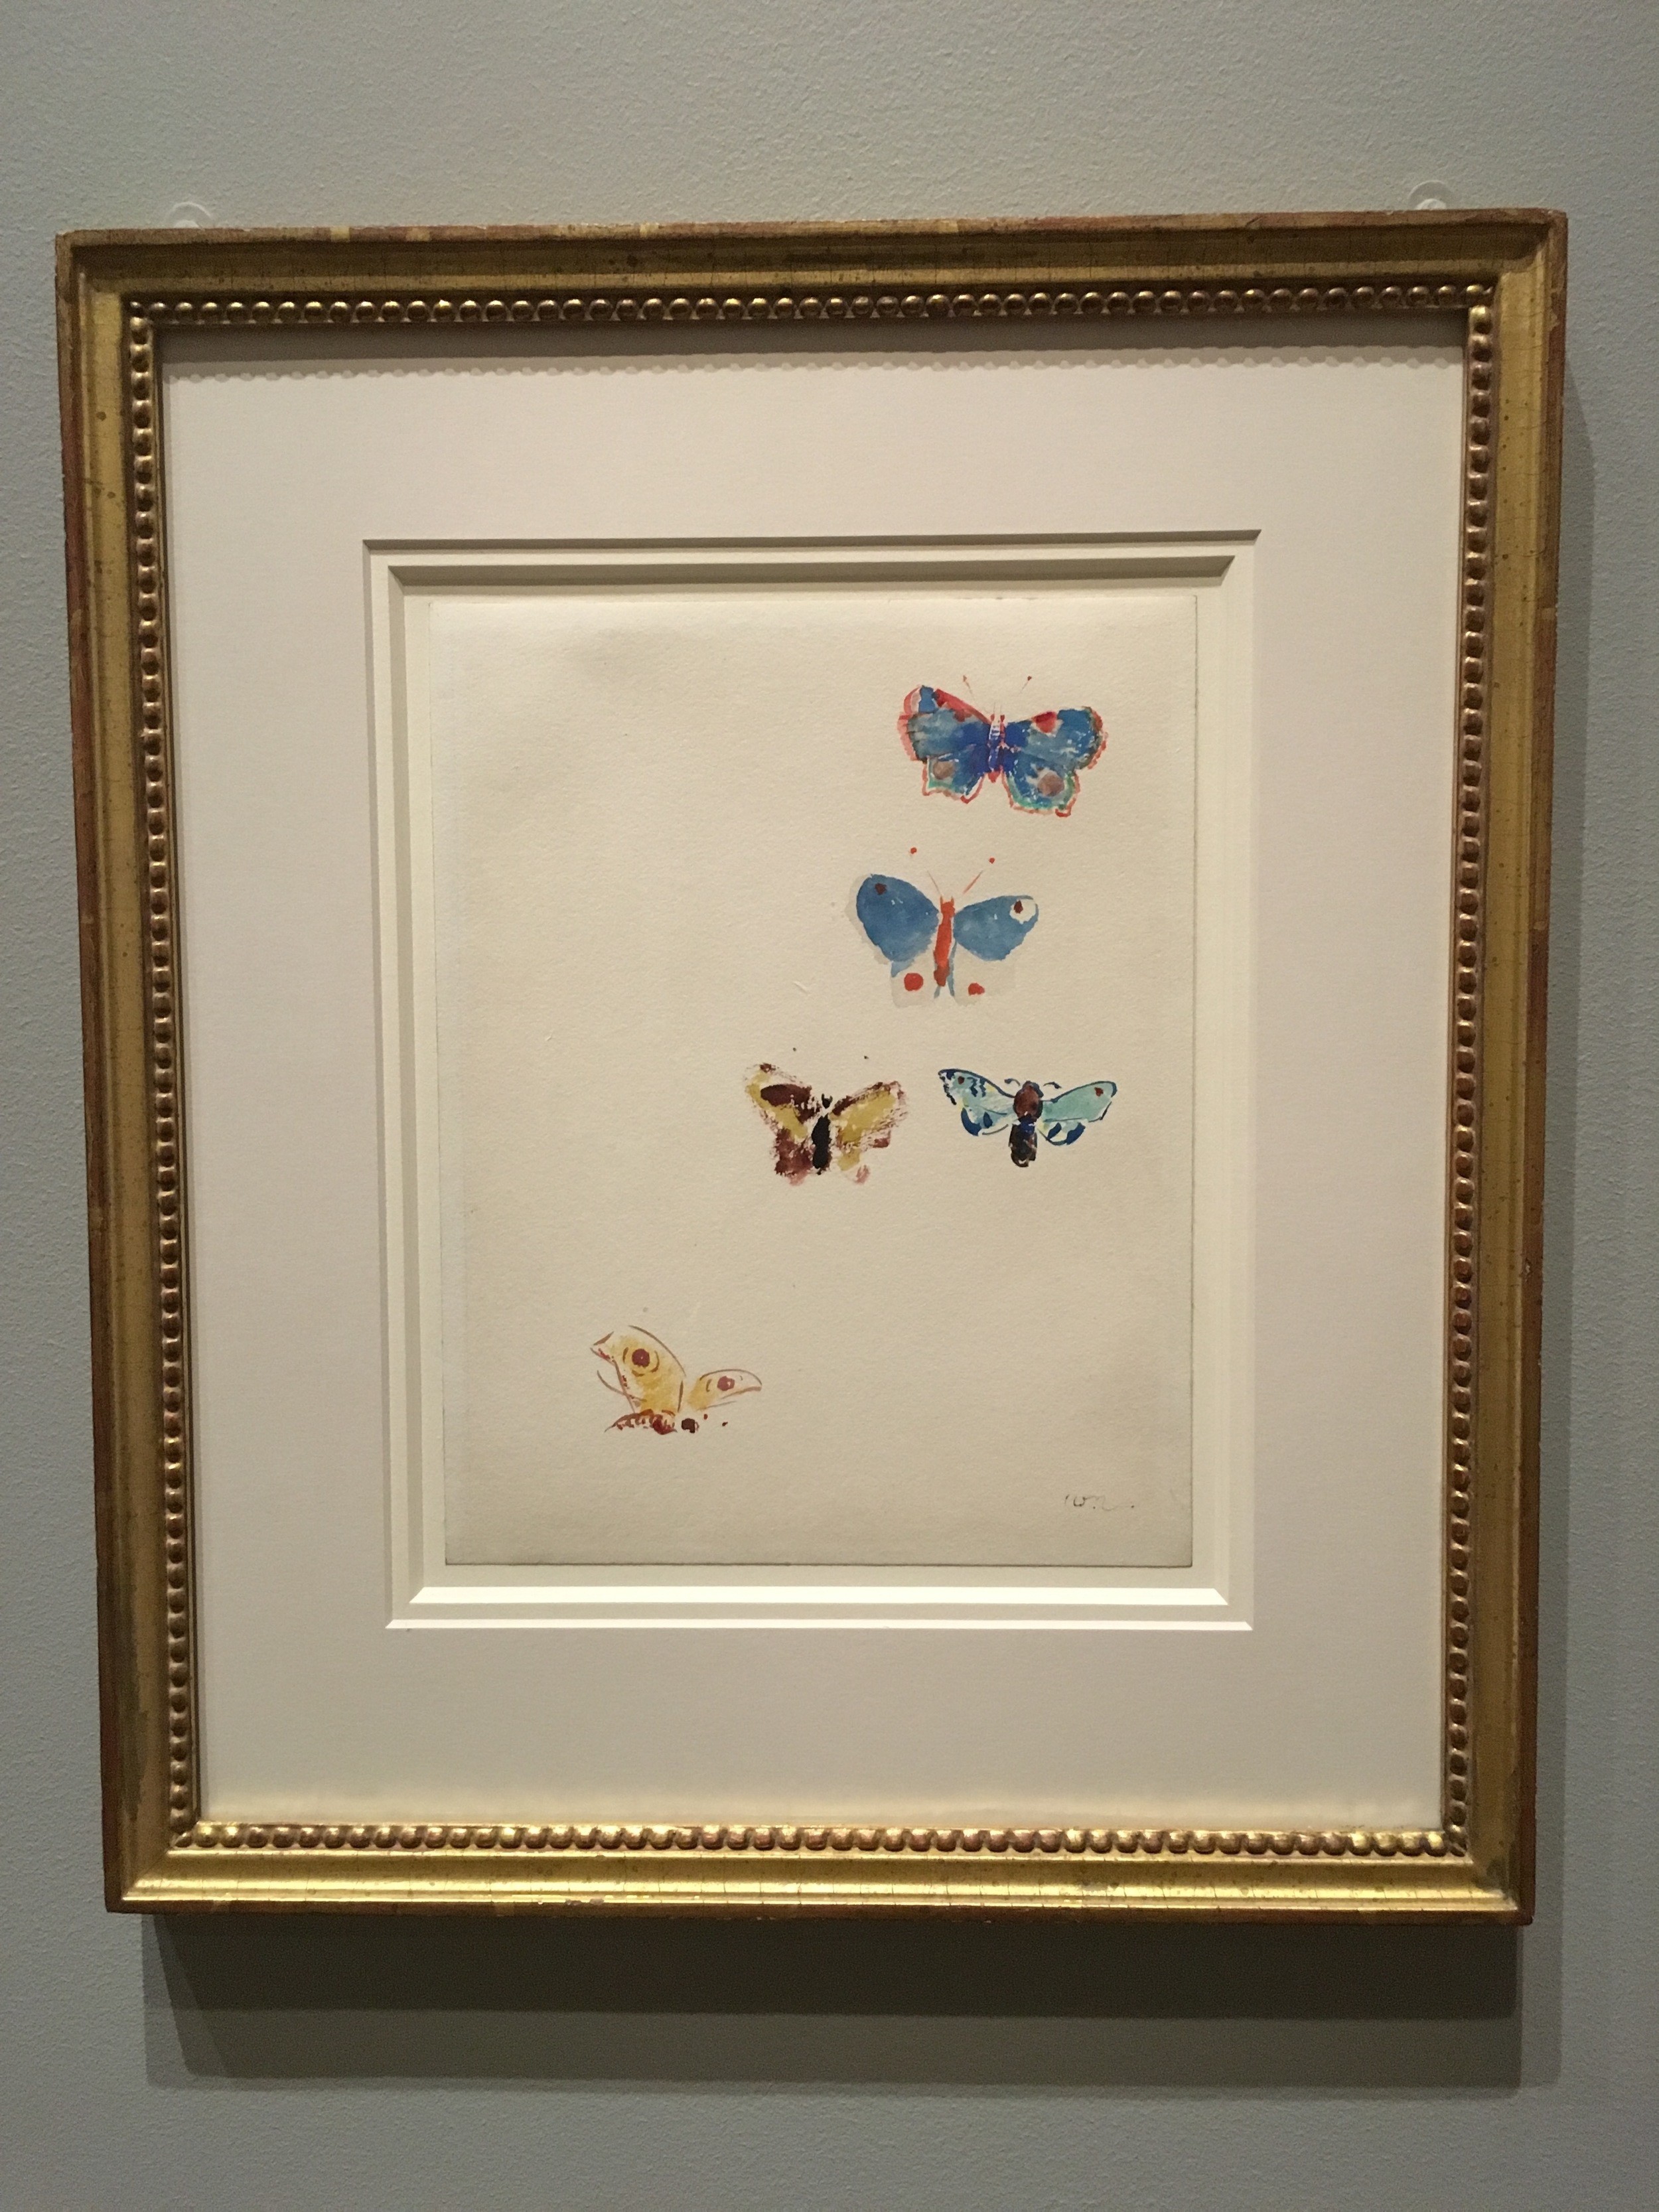 Odilon Redon. Butterflies. From Mellon's collection. No caption needed -- other than pure joy!